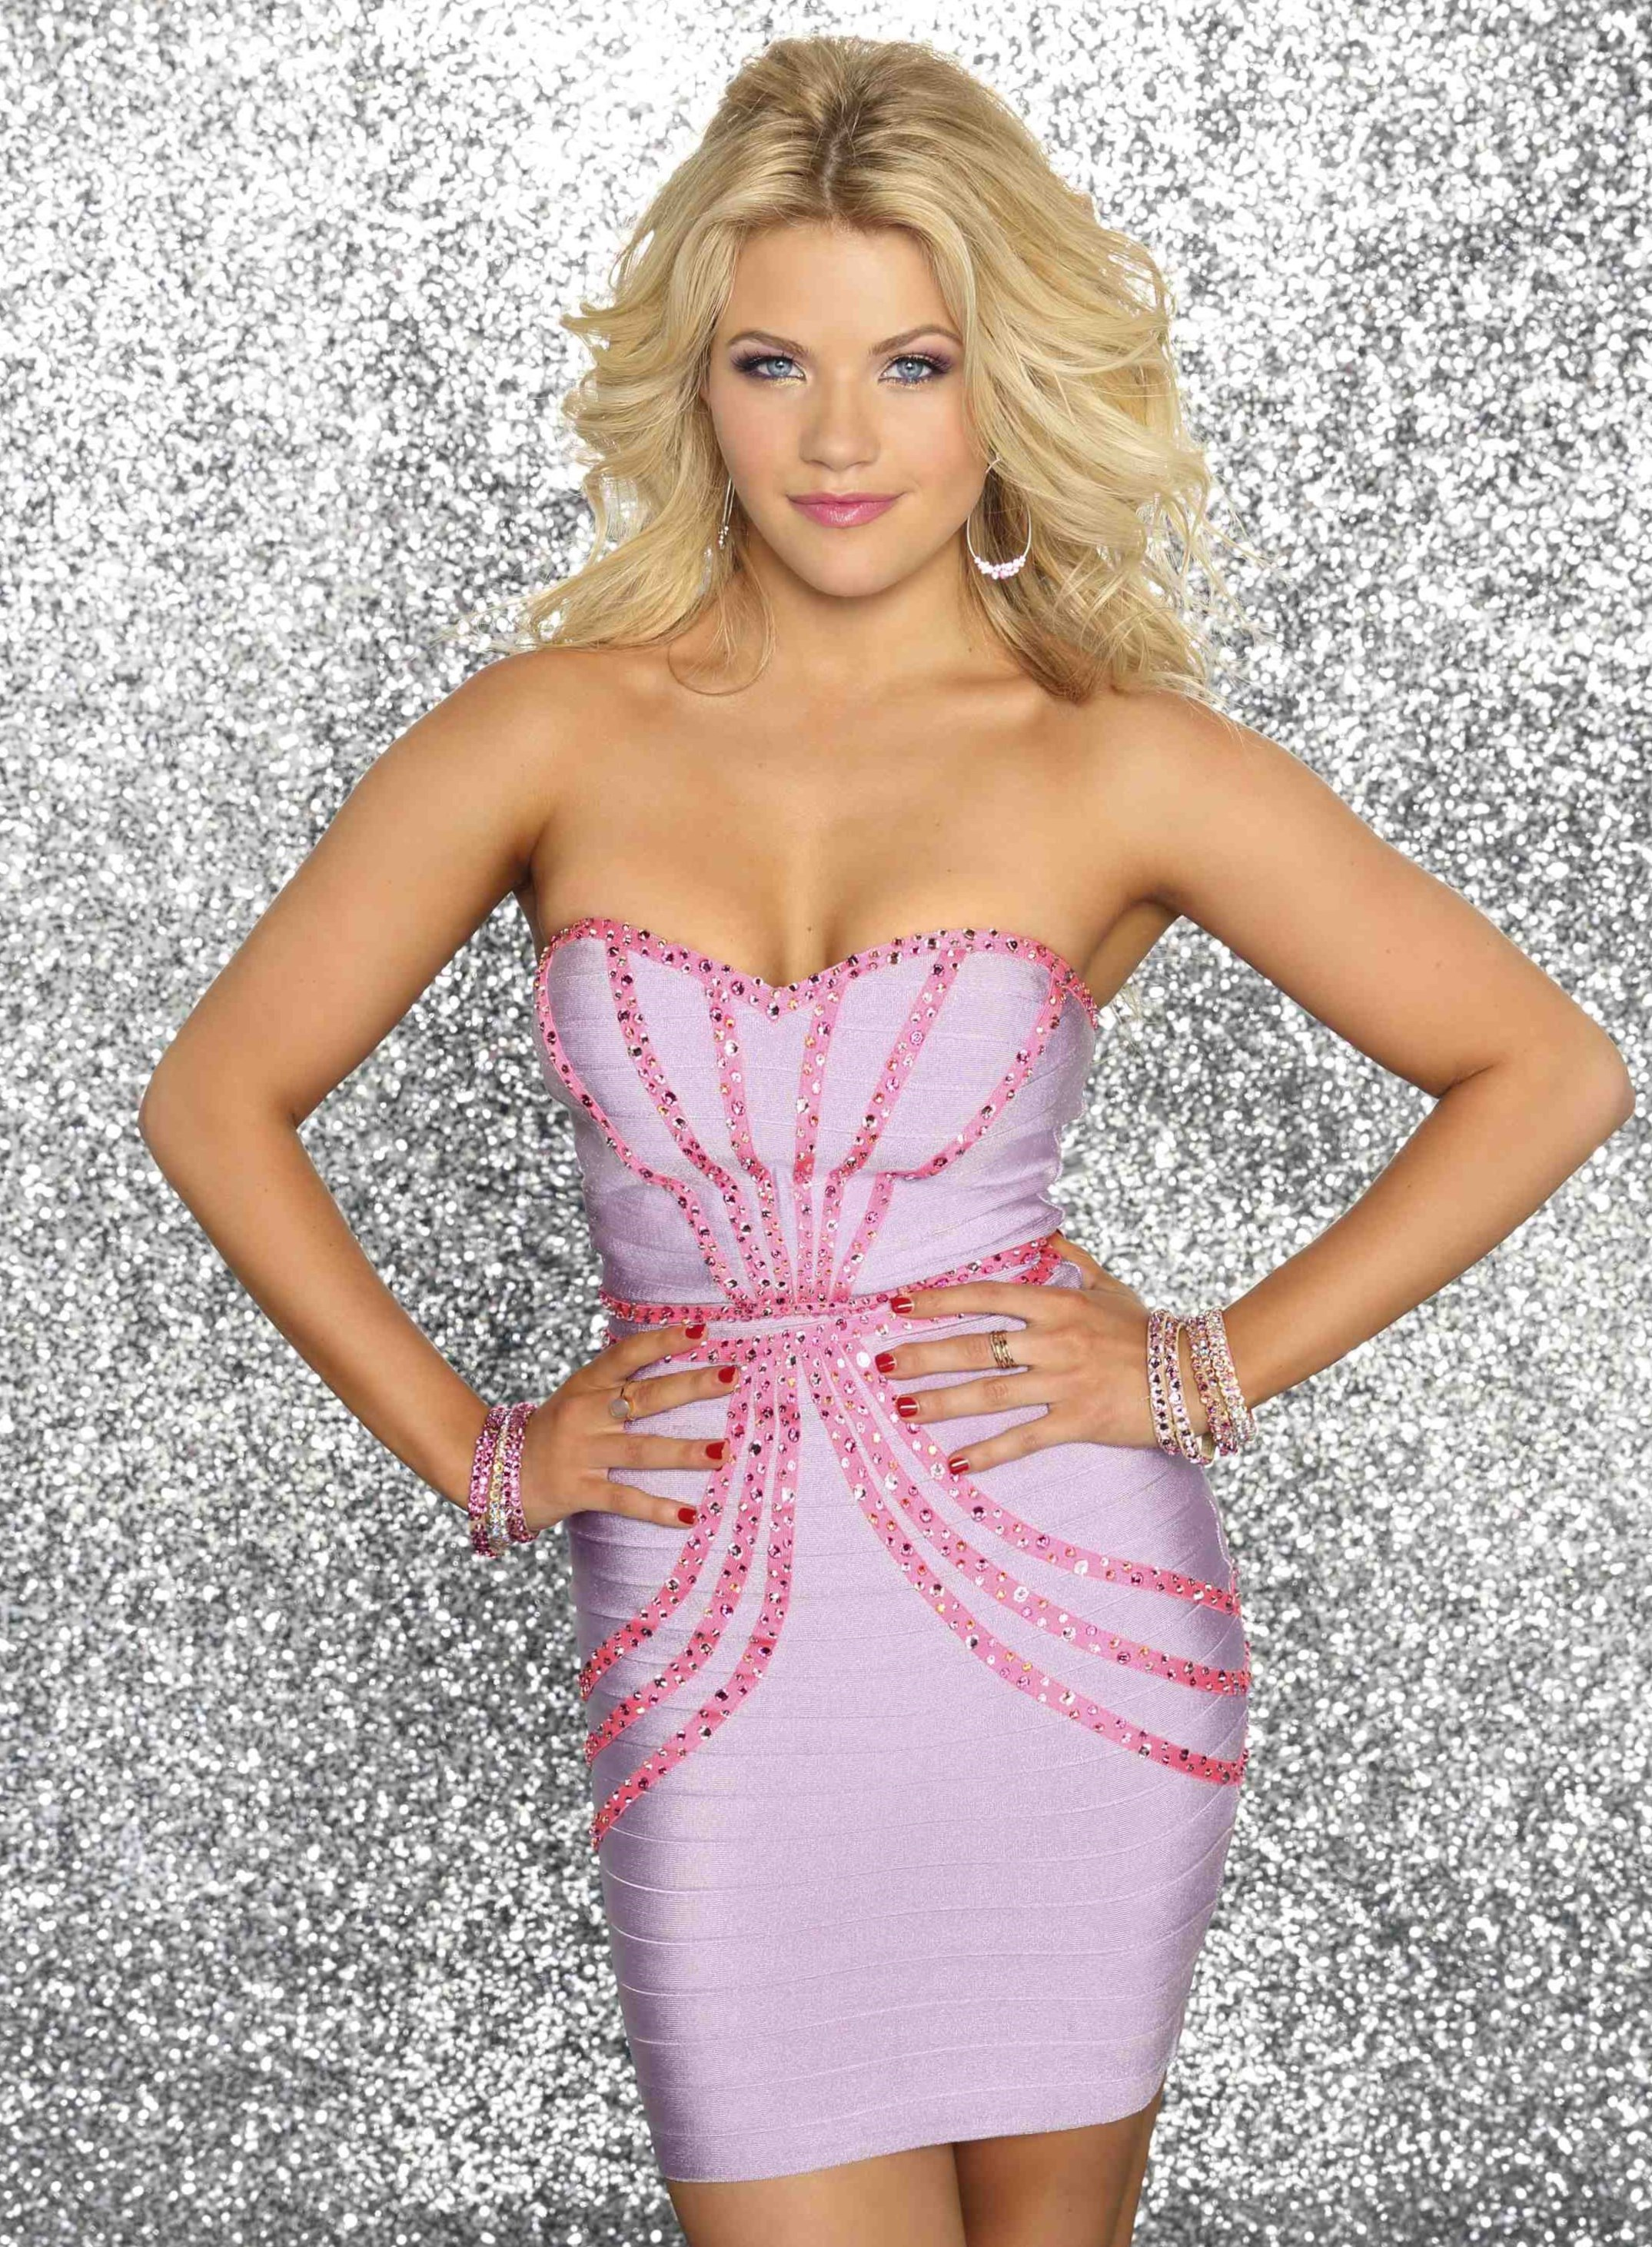 witney carson height